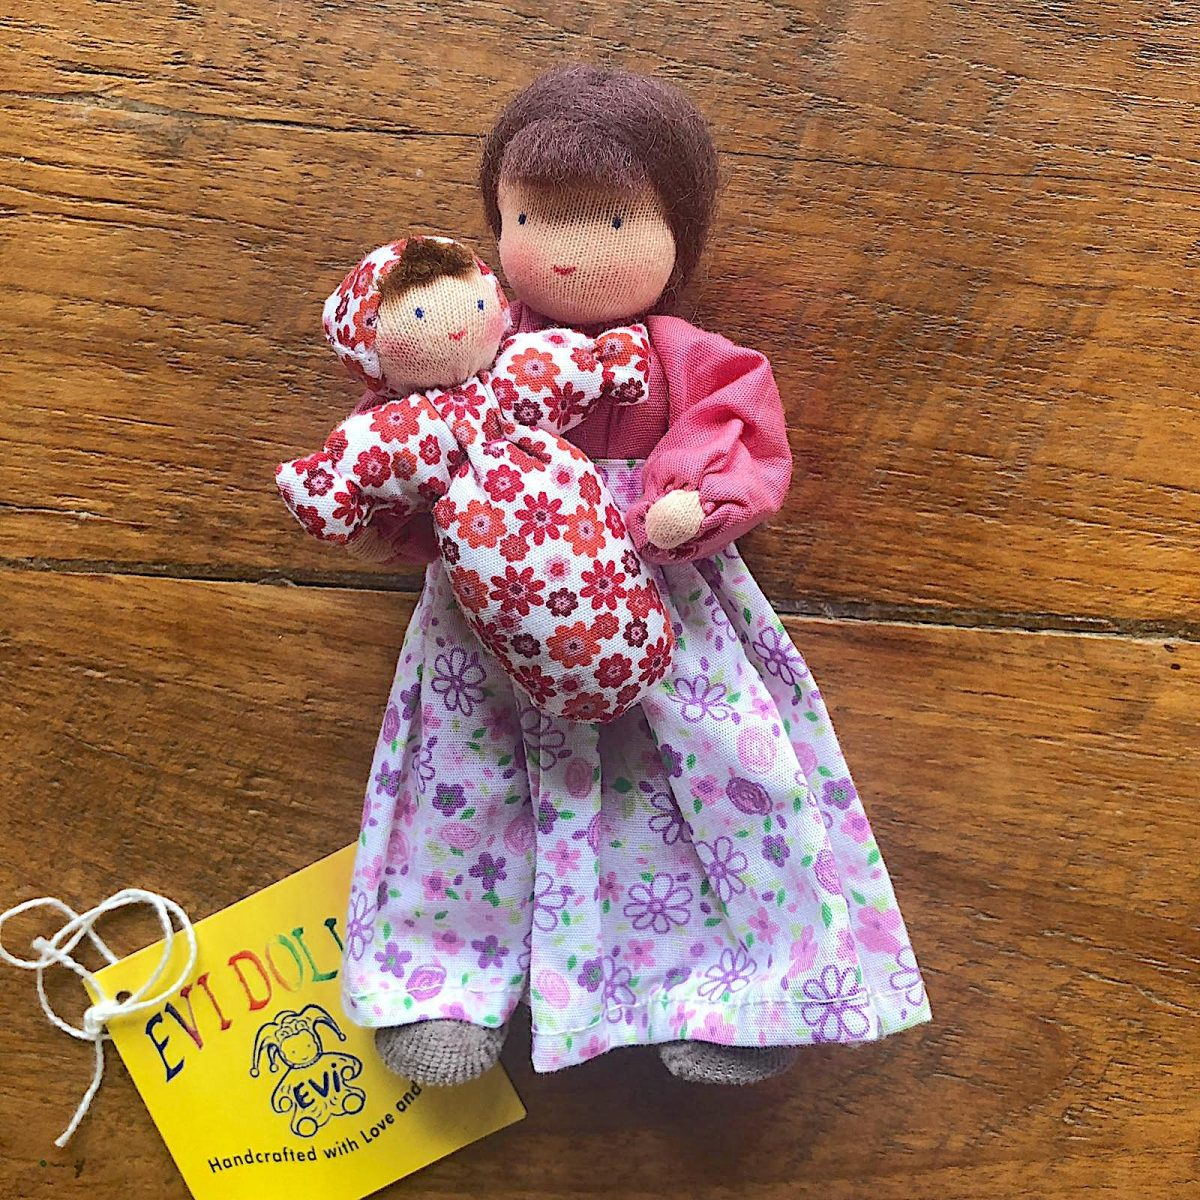 evi doll mother brown hair